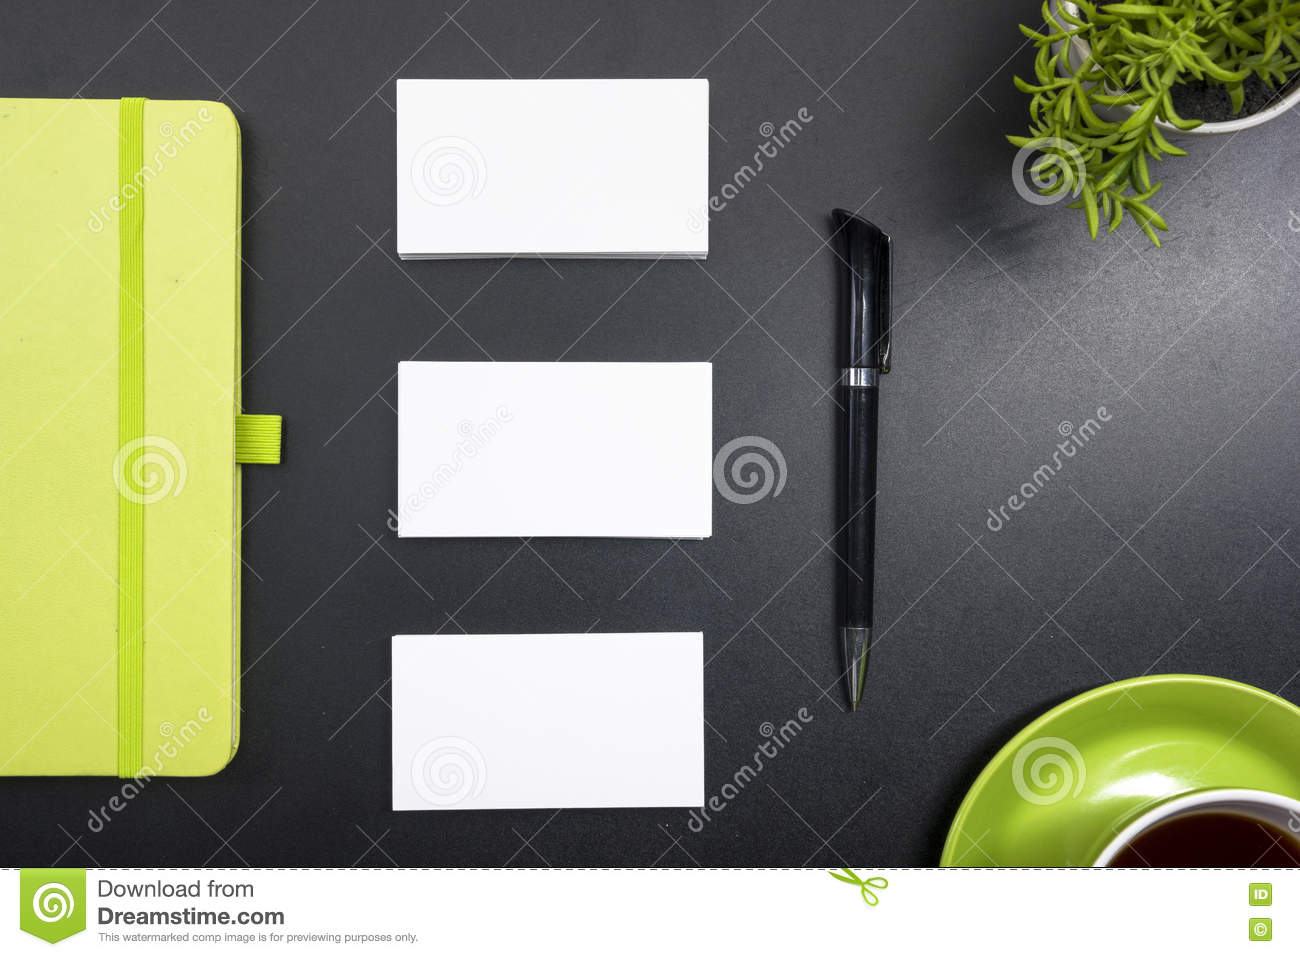 Business card blank, notepad, coffee cup and pen, flower at office desk table top view. Corporate stationery branding